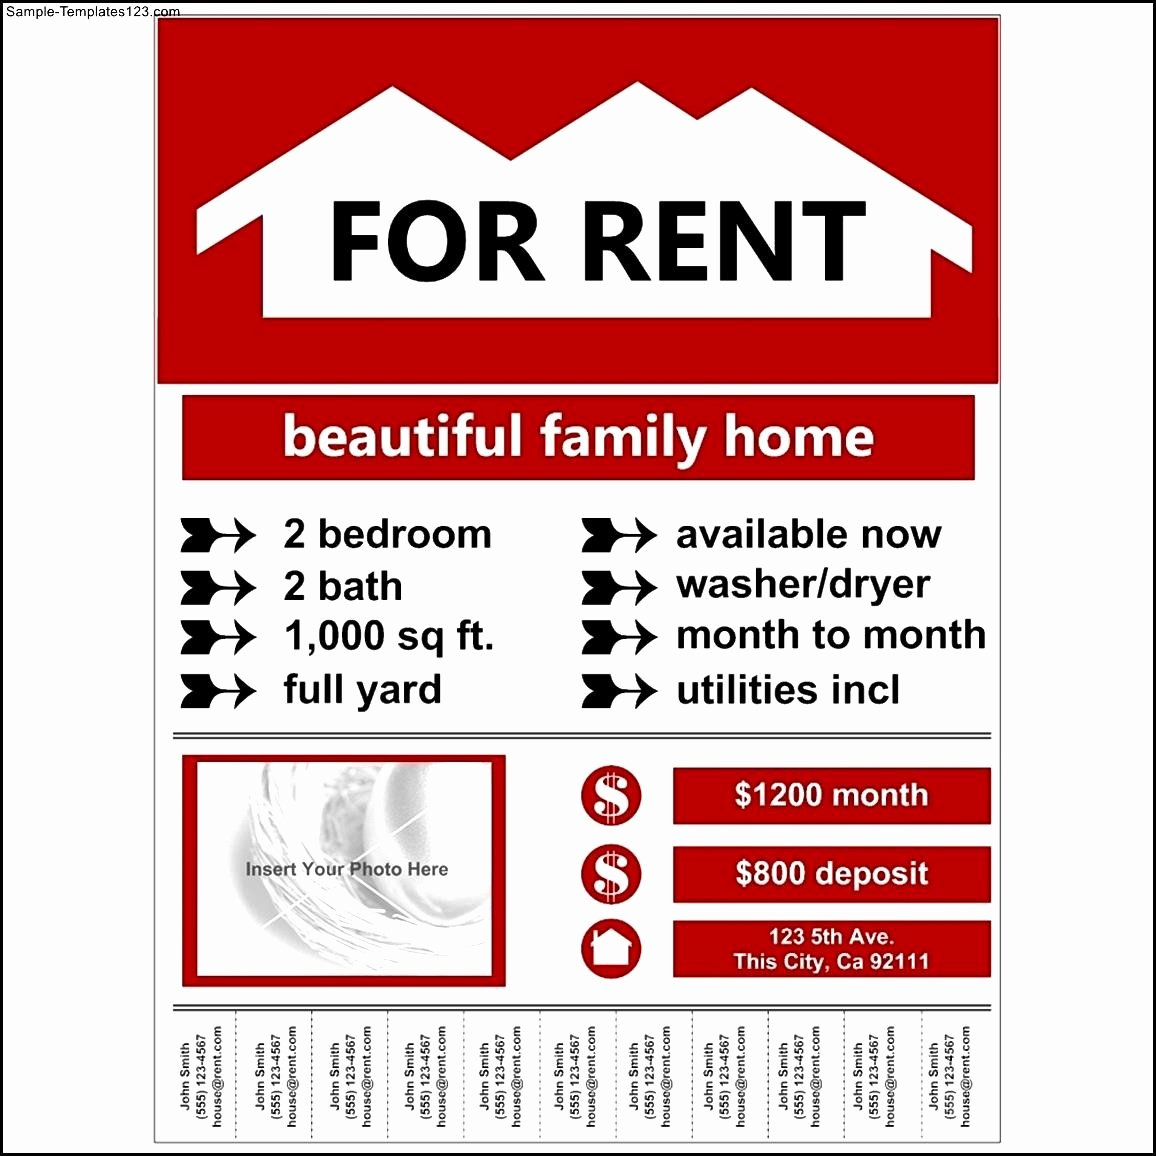 Apartment for Rent Flyer Template Awesome 30 Of Apartments for Rent Advertisement Free